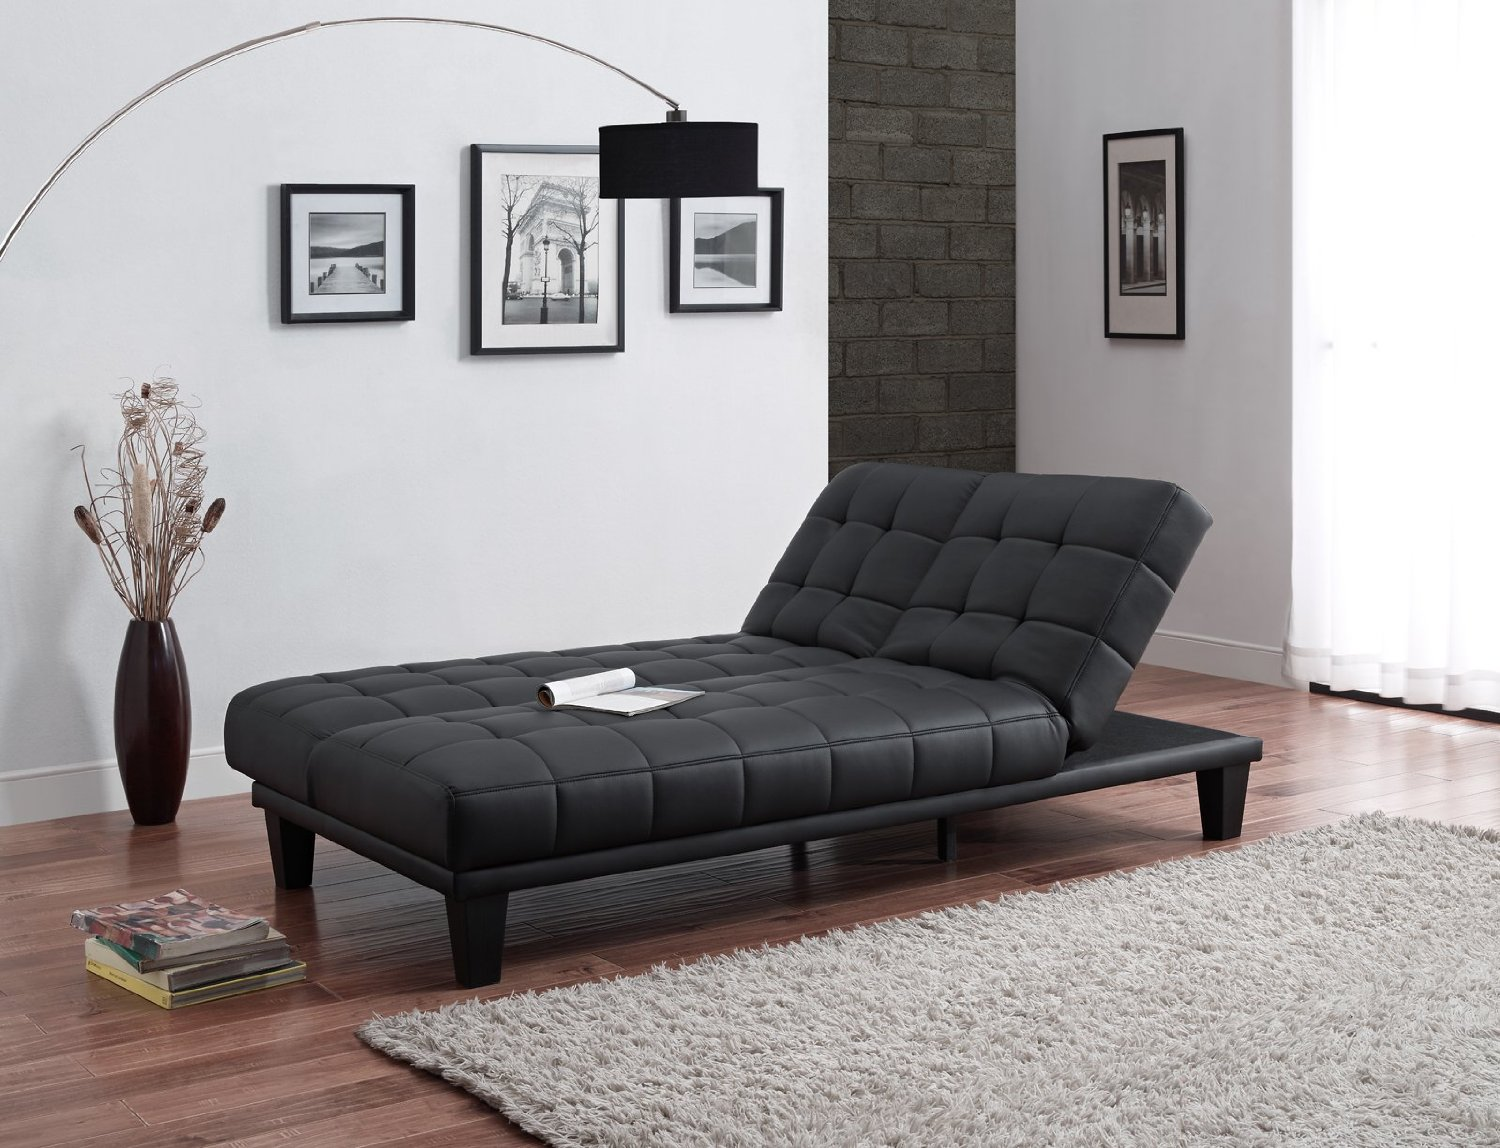 Julia convertible futon sofa bed with chaise lounger black for Chaise lounge convertible bed